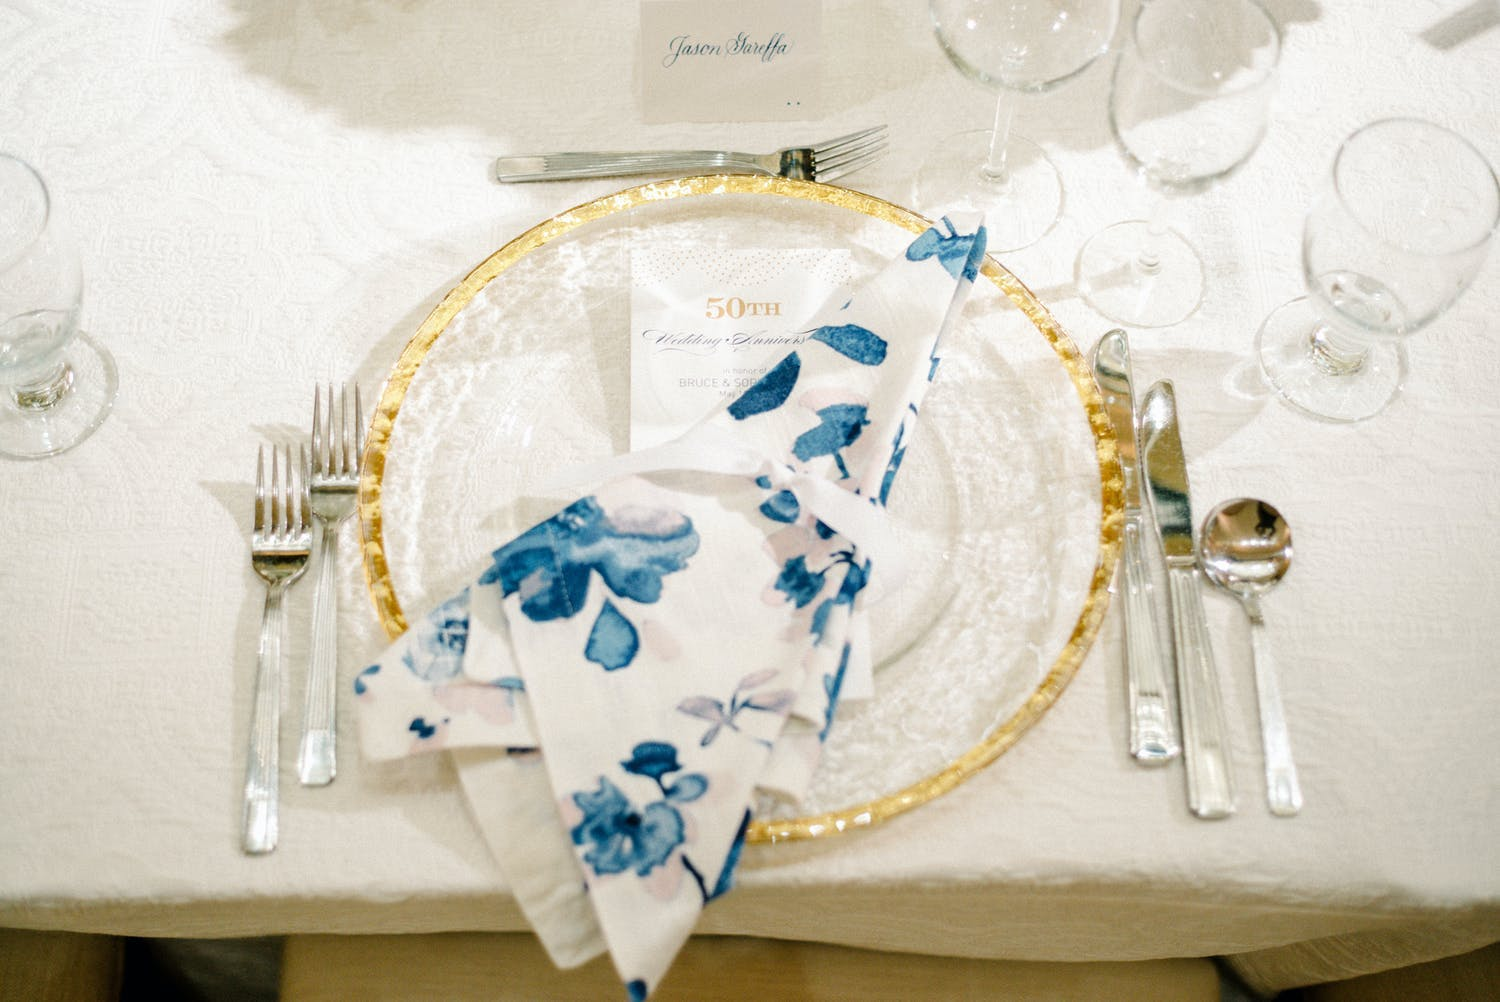 Elegant dinner plate with blue and white floral napkin at 50th-wedding anniversary | PartySlate